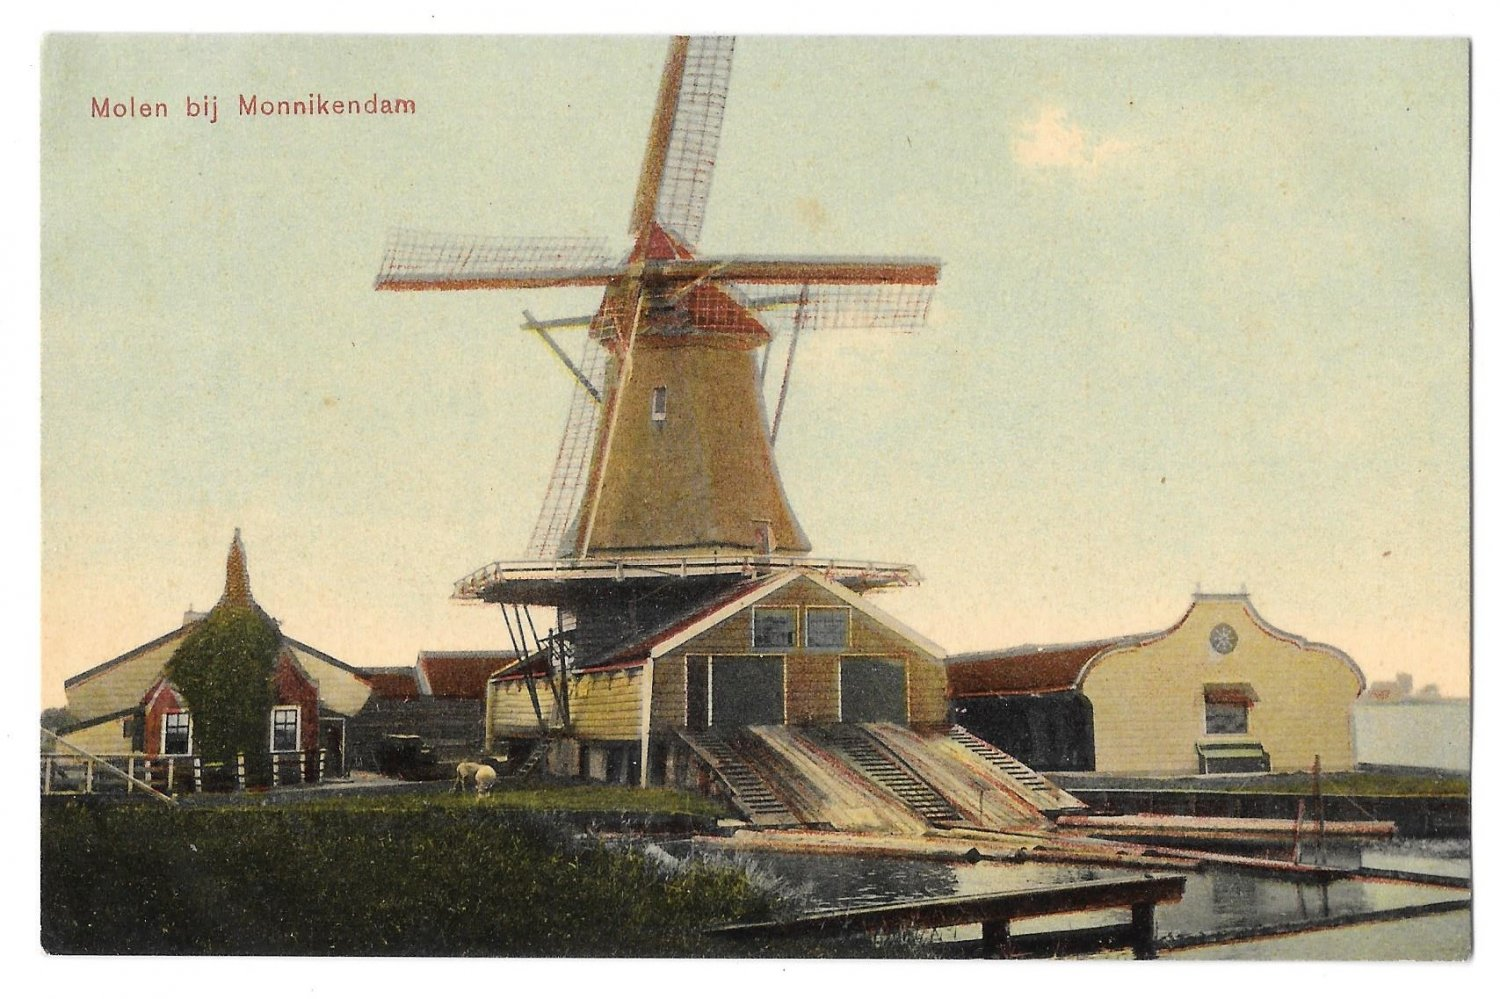 Netherlands Holland Molen Monnikendam Dutch Windmill 1908 Trenkler Postcard